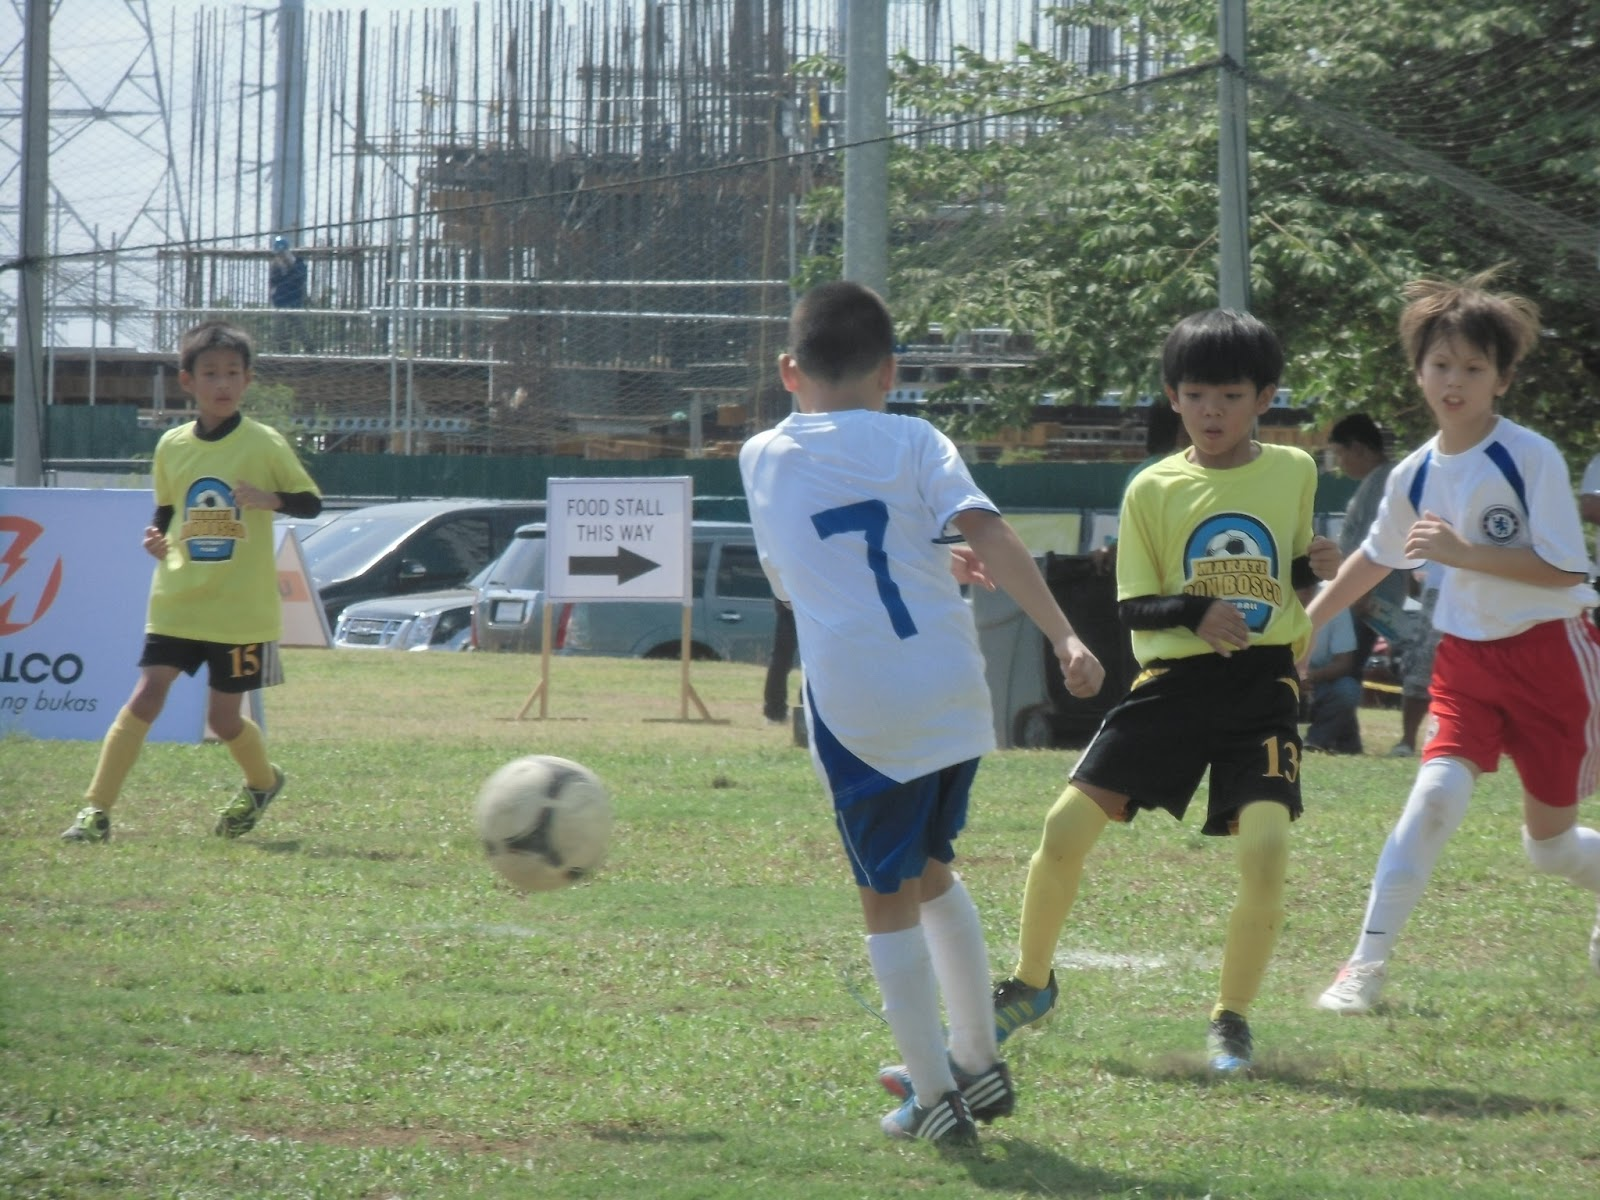 Lanco And Younghusbands Hold First Tribeca Footbal Festival Catriona Maika Top Handle Bag Pink Upscale Leisure Provider Landco Pacific Corporation In Partnership With Chelsea Fc Soccer School Philippines The Operated By Famed Football